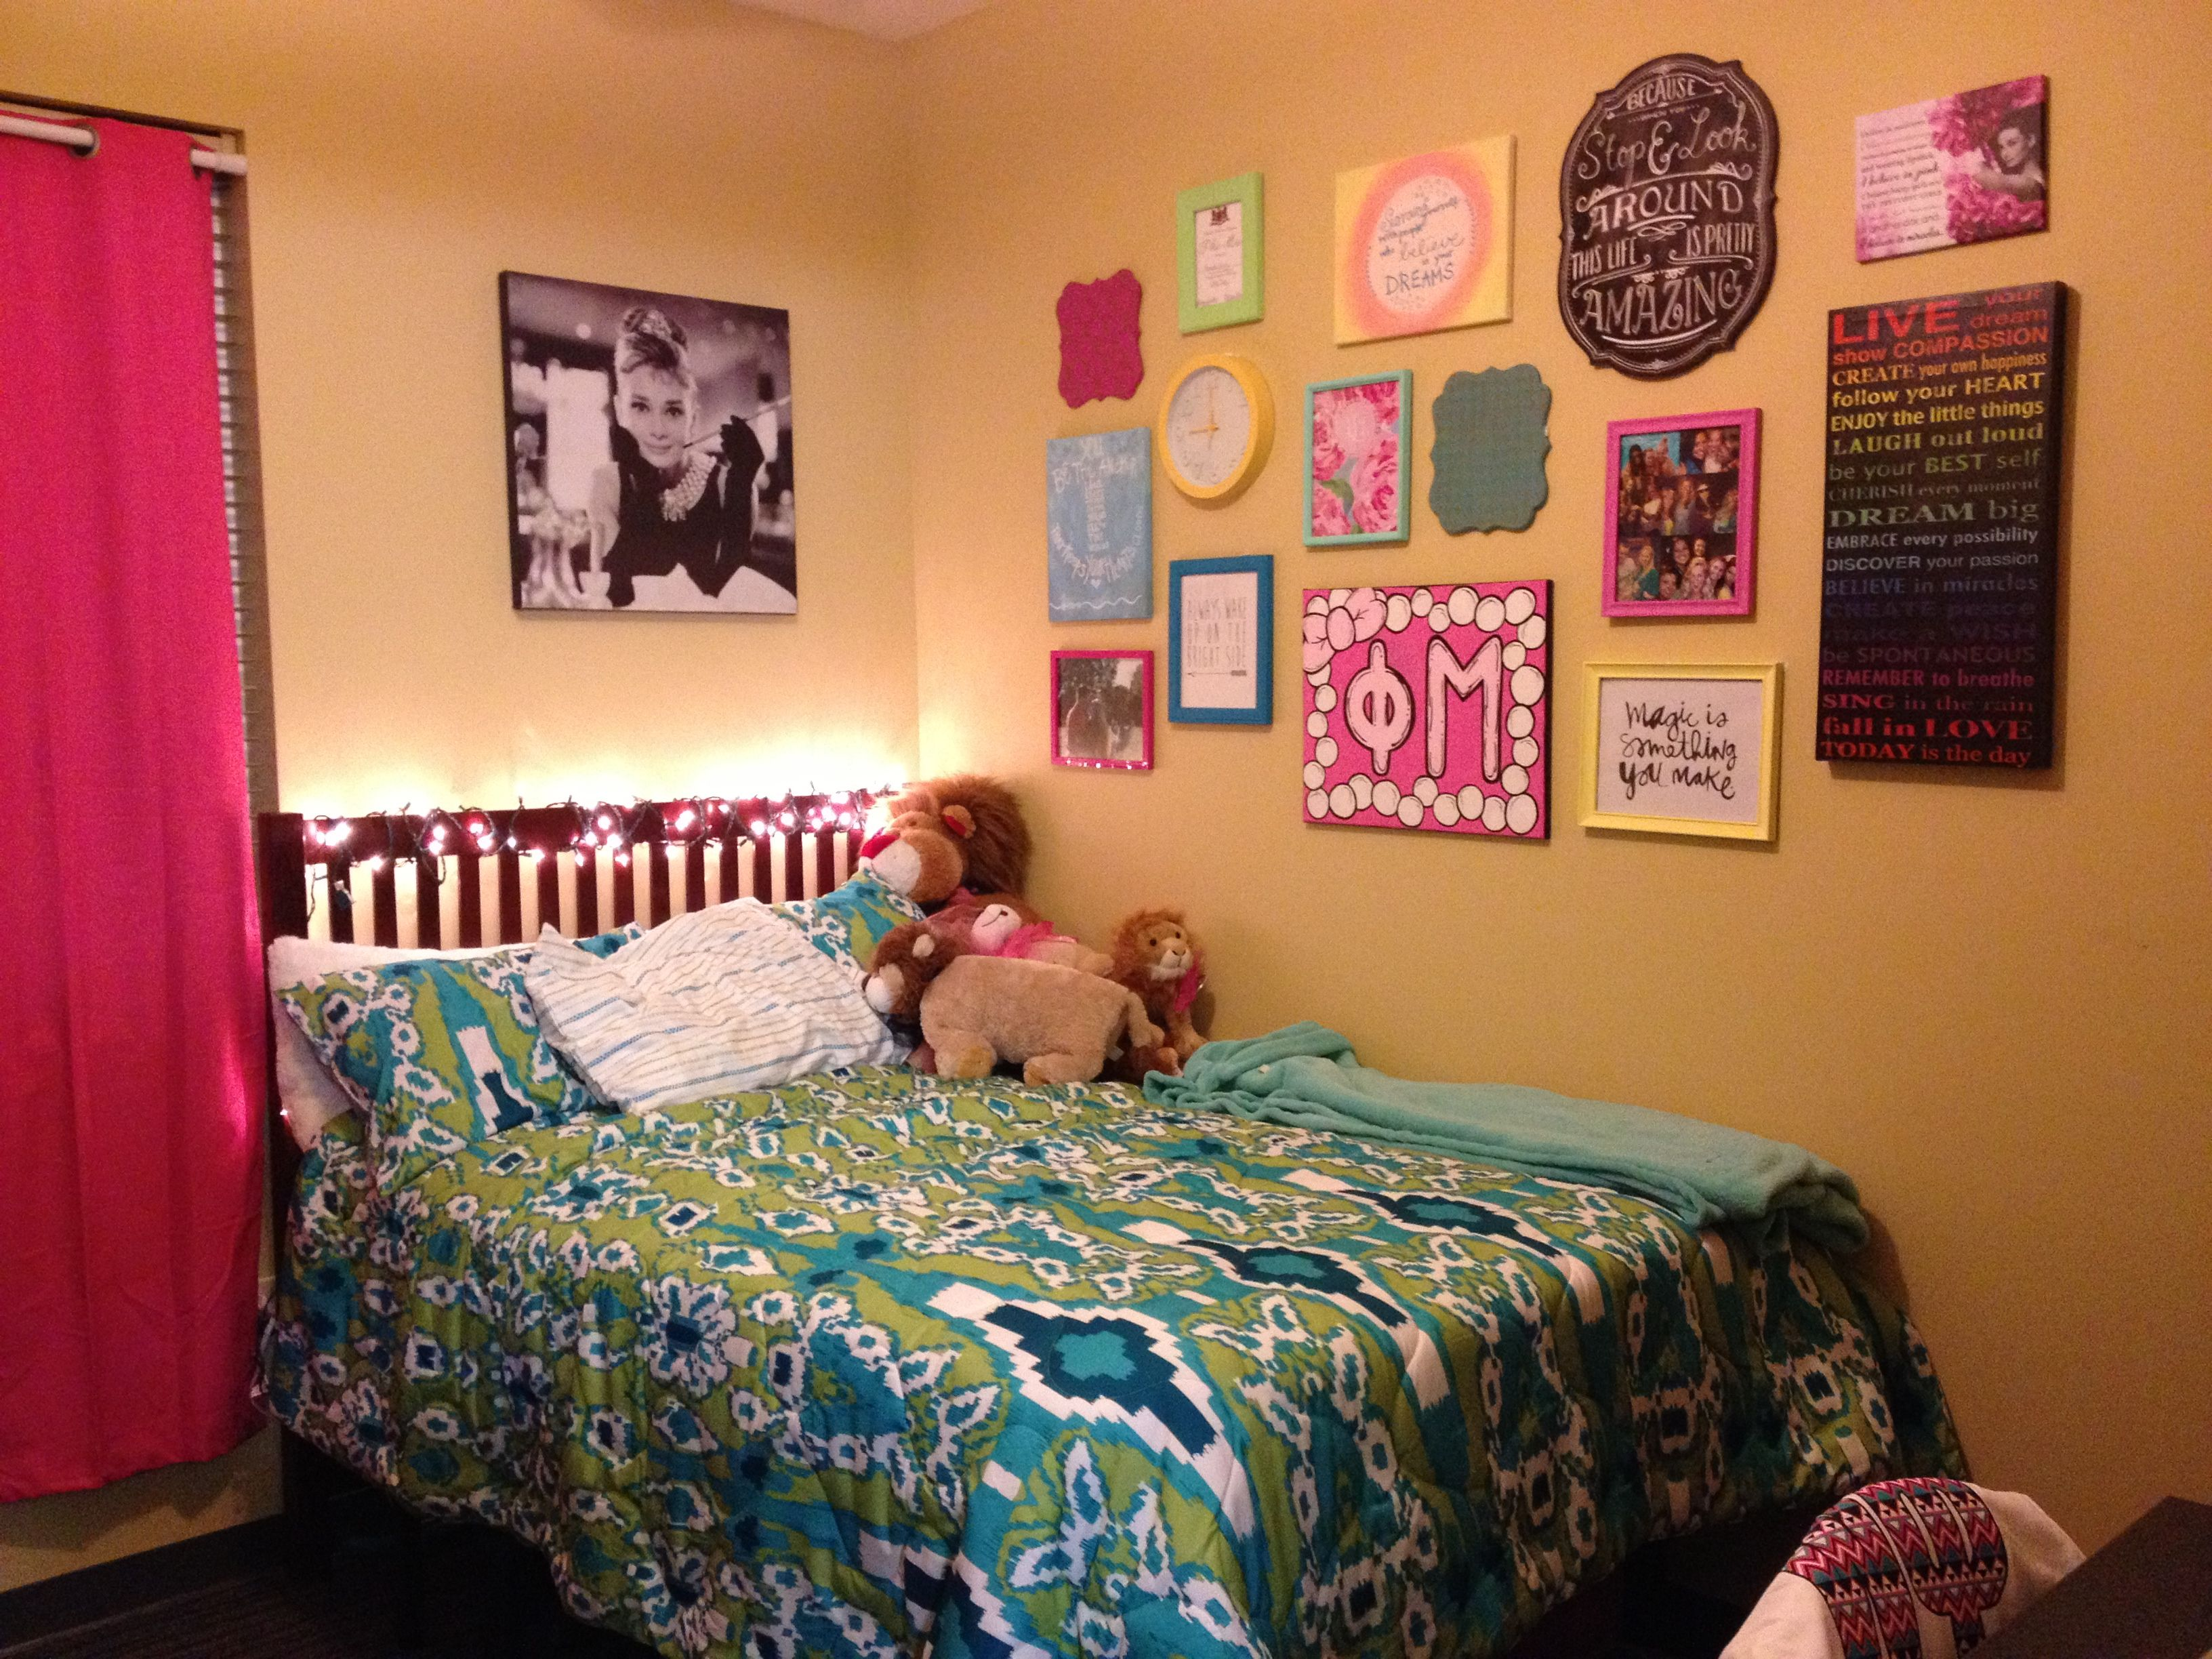 Dorm Room Wall Decor dorm room. wall decor! | {dorm living} | pinterest | dorm room